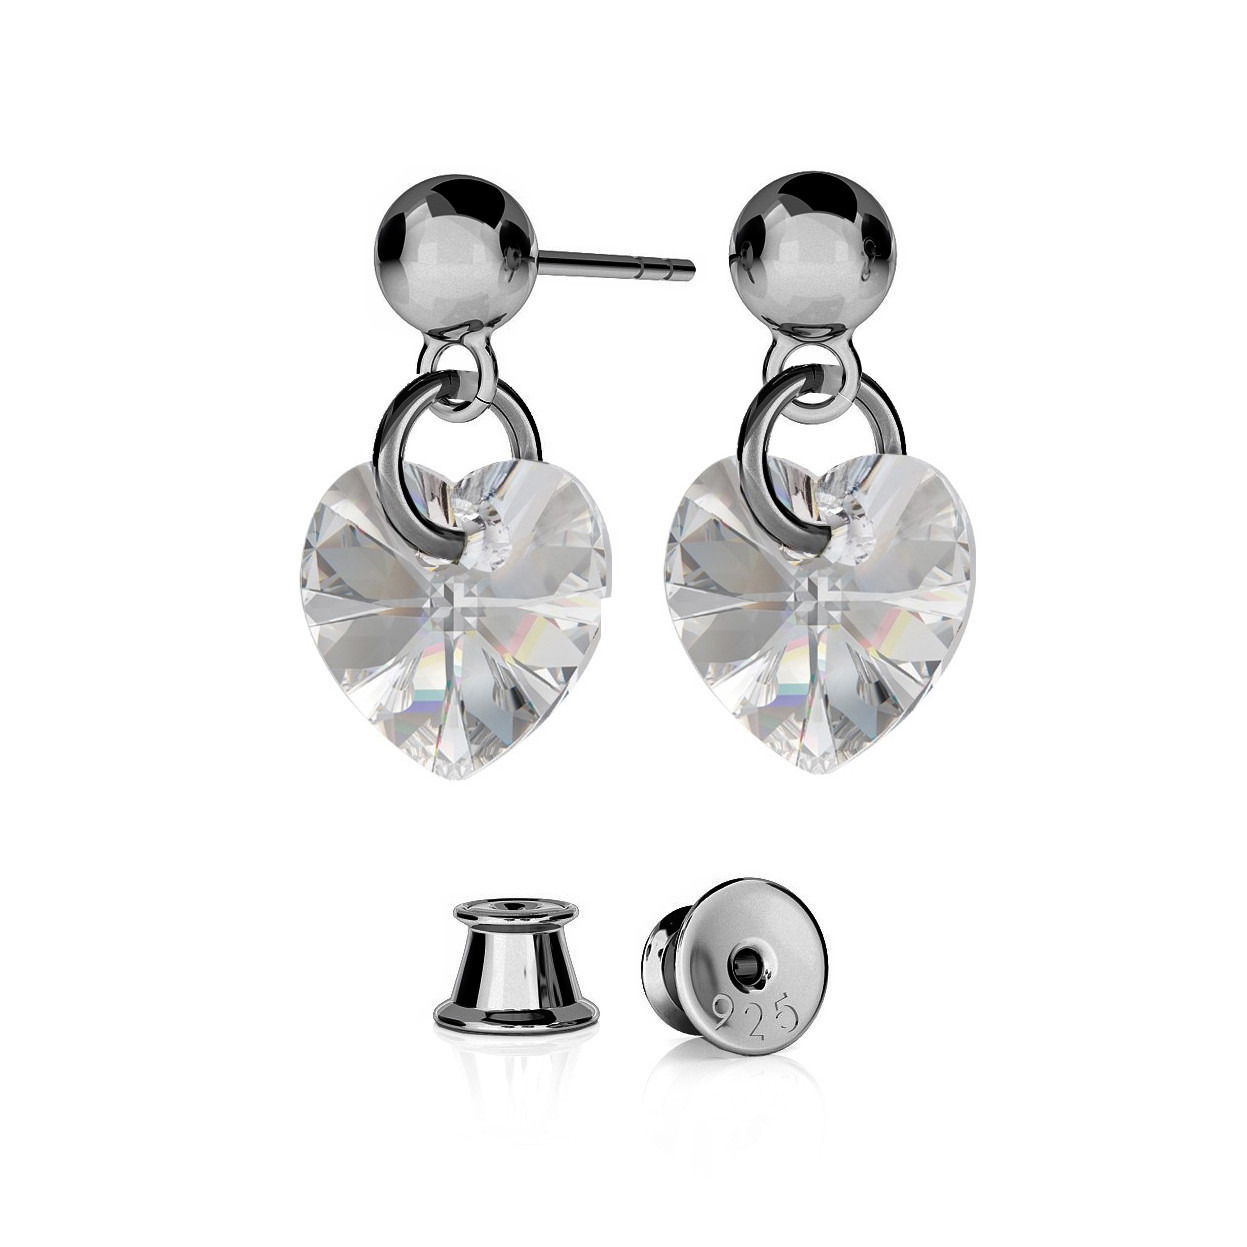 DEVIL EARRINGS SWAROVSKI RIVOLI